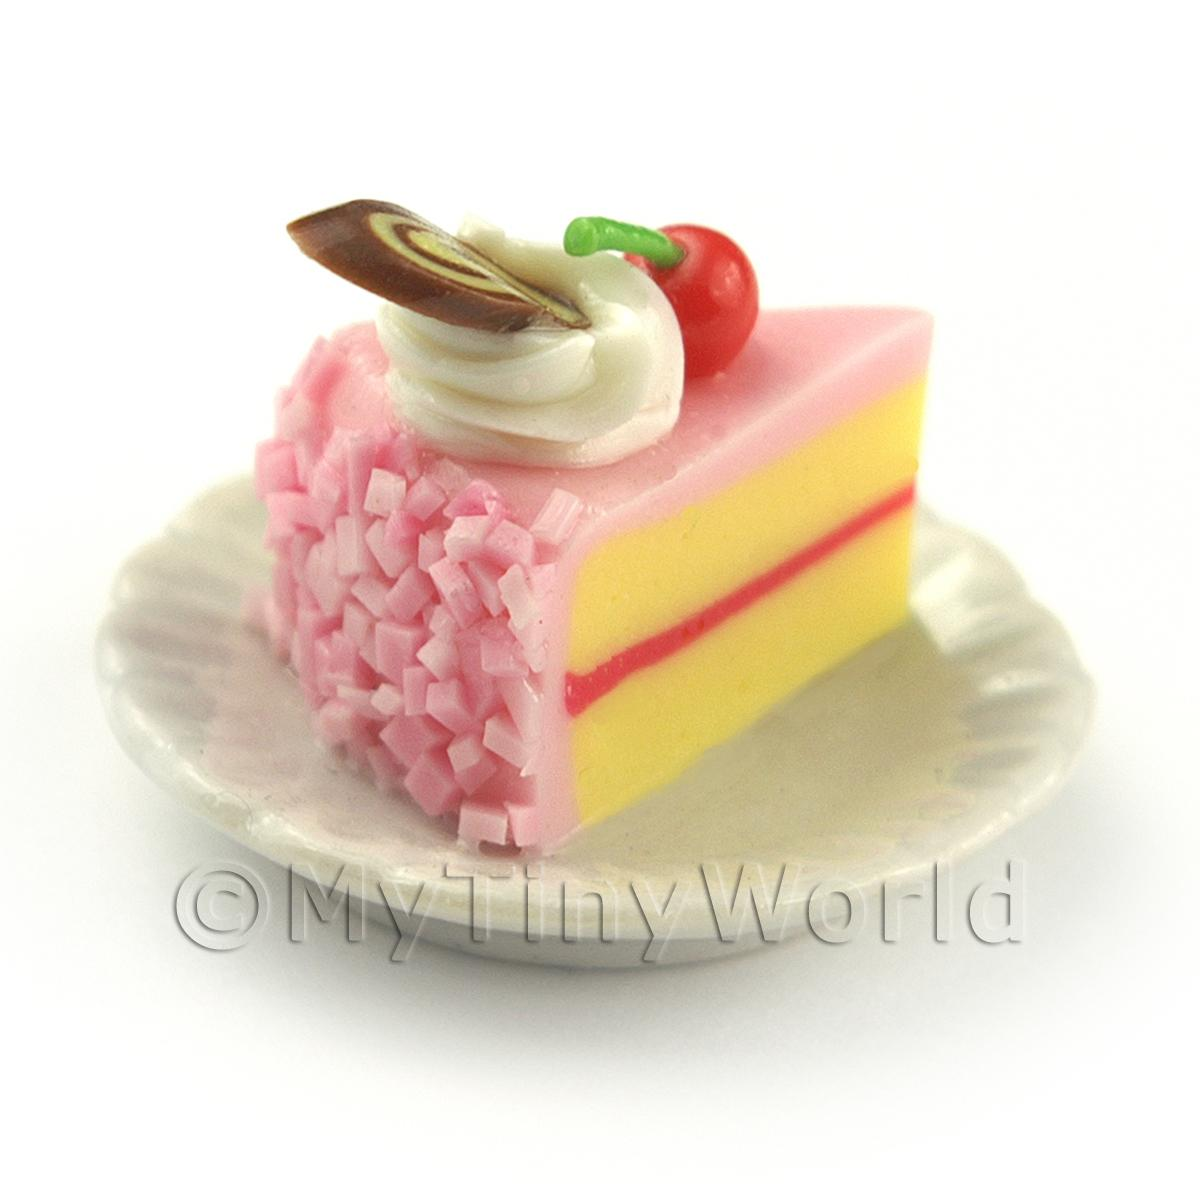 Miniature Pink Iced Individual Cherry and Nougat Cake Slice